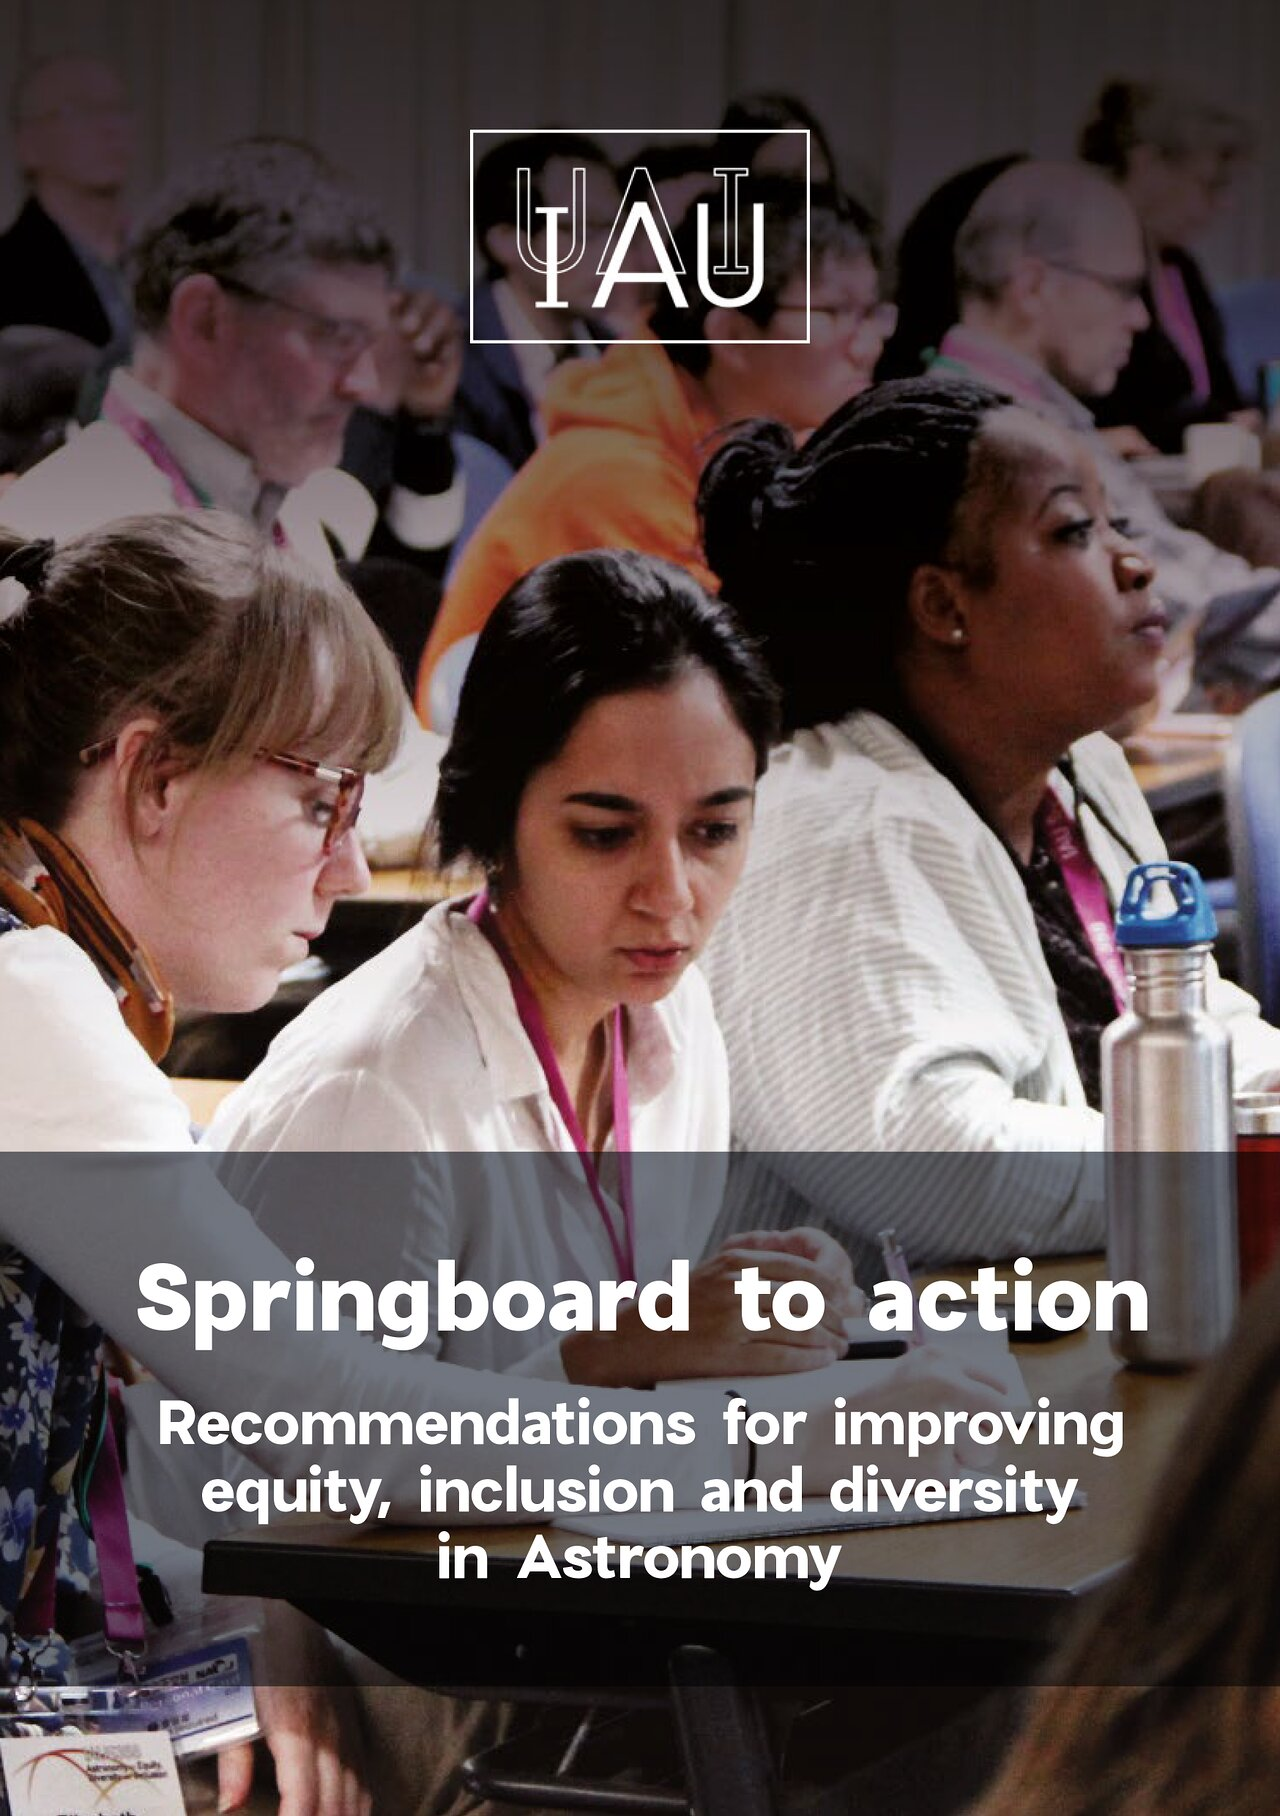 Cover of the Springboard to Action document